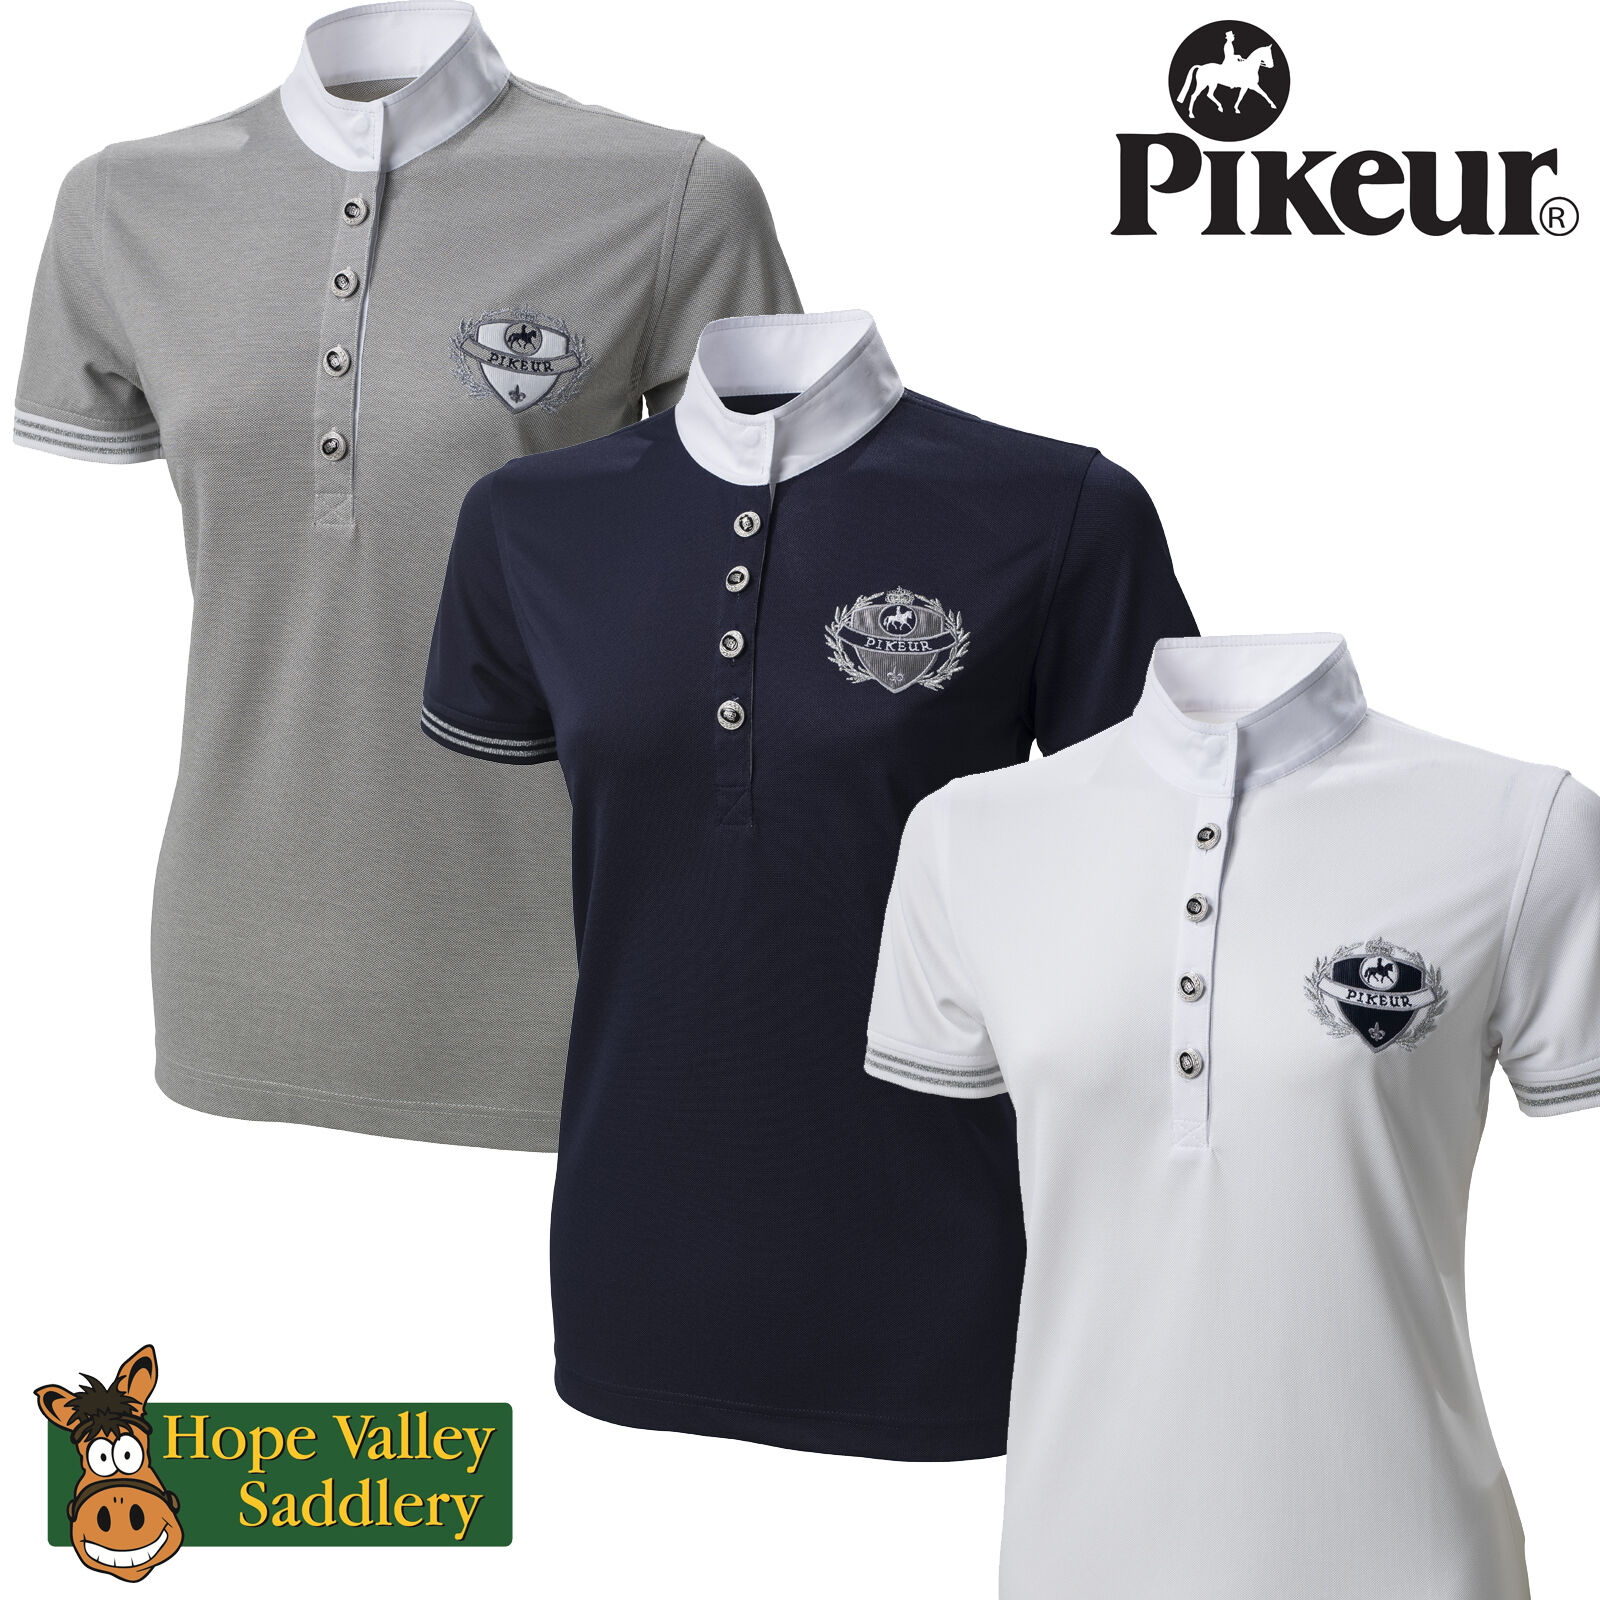 Pikeur Ladies Competition  Shirt (499) BNWT  online shopping